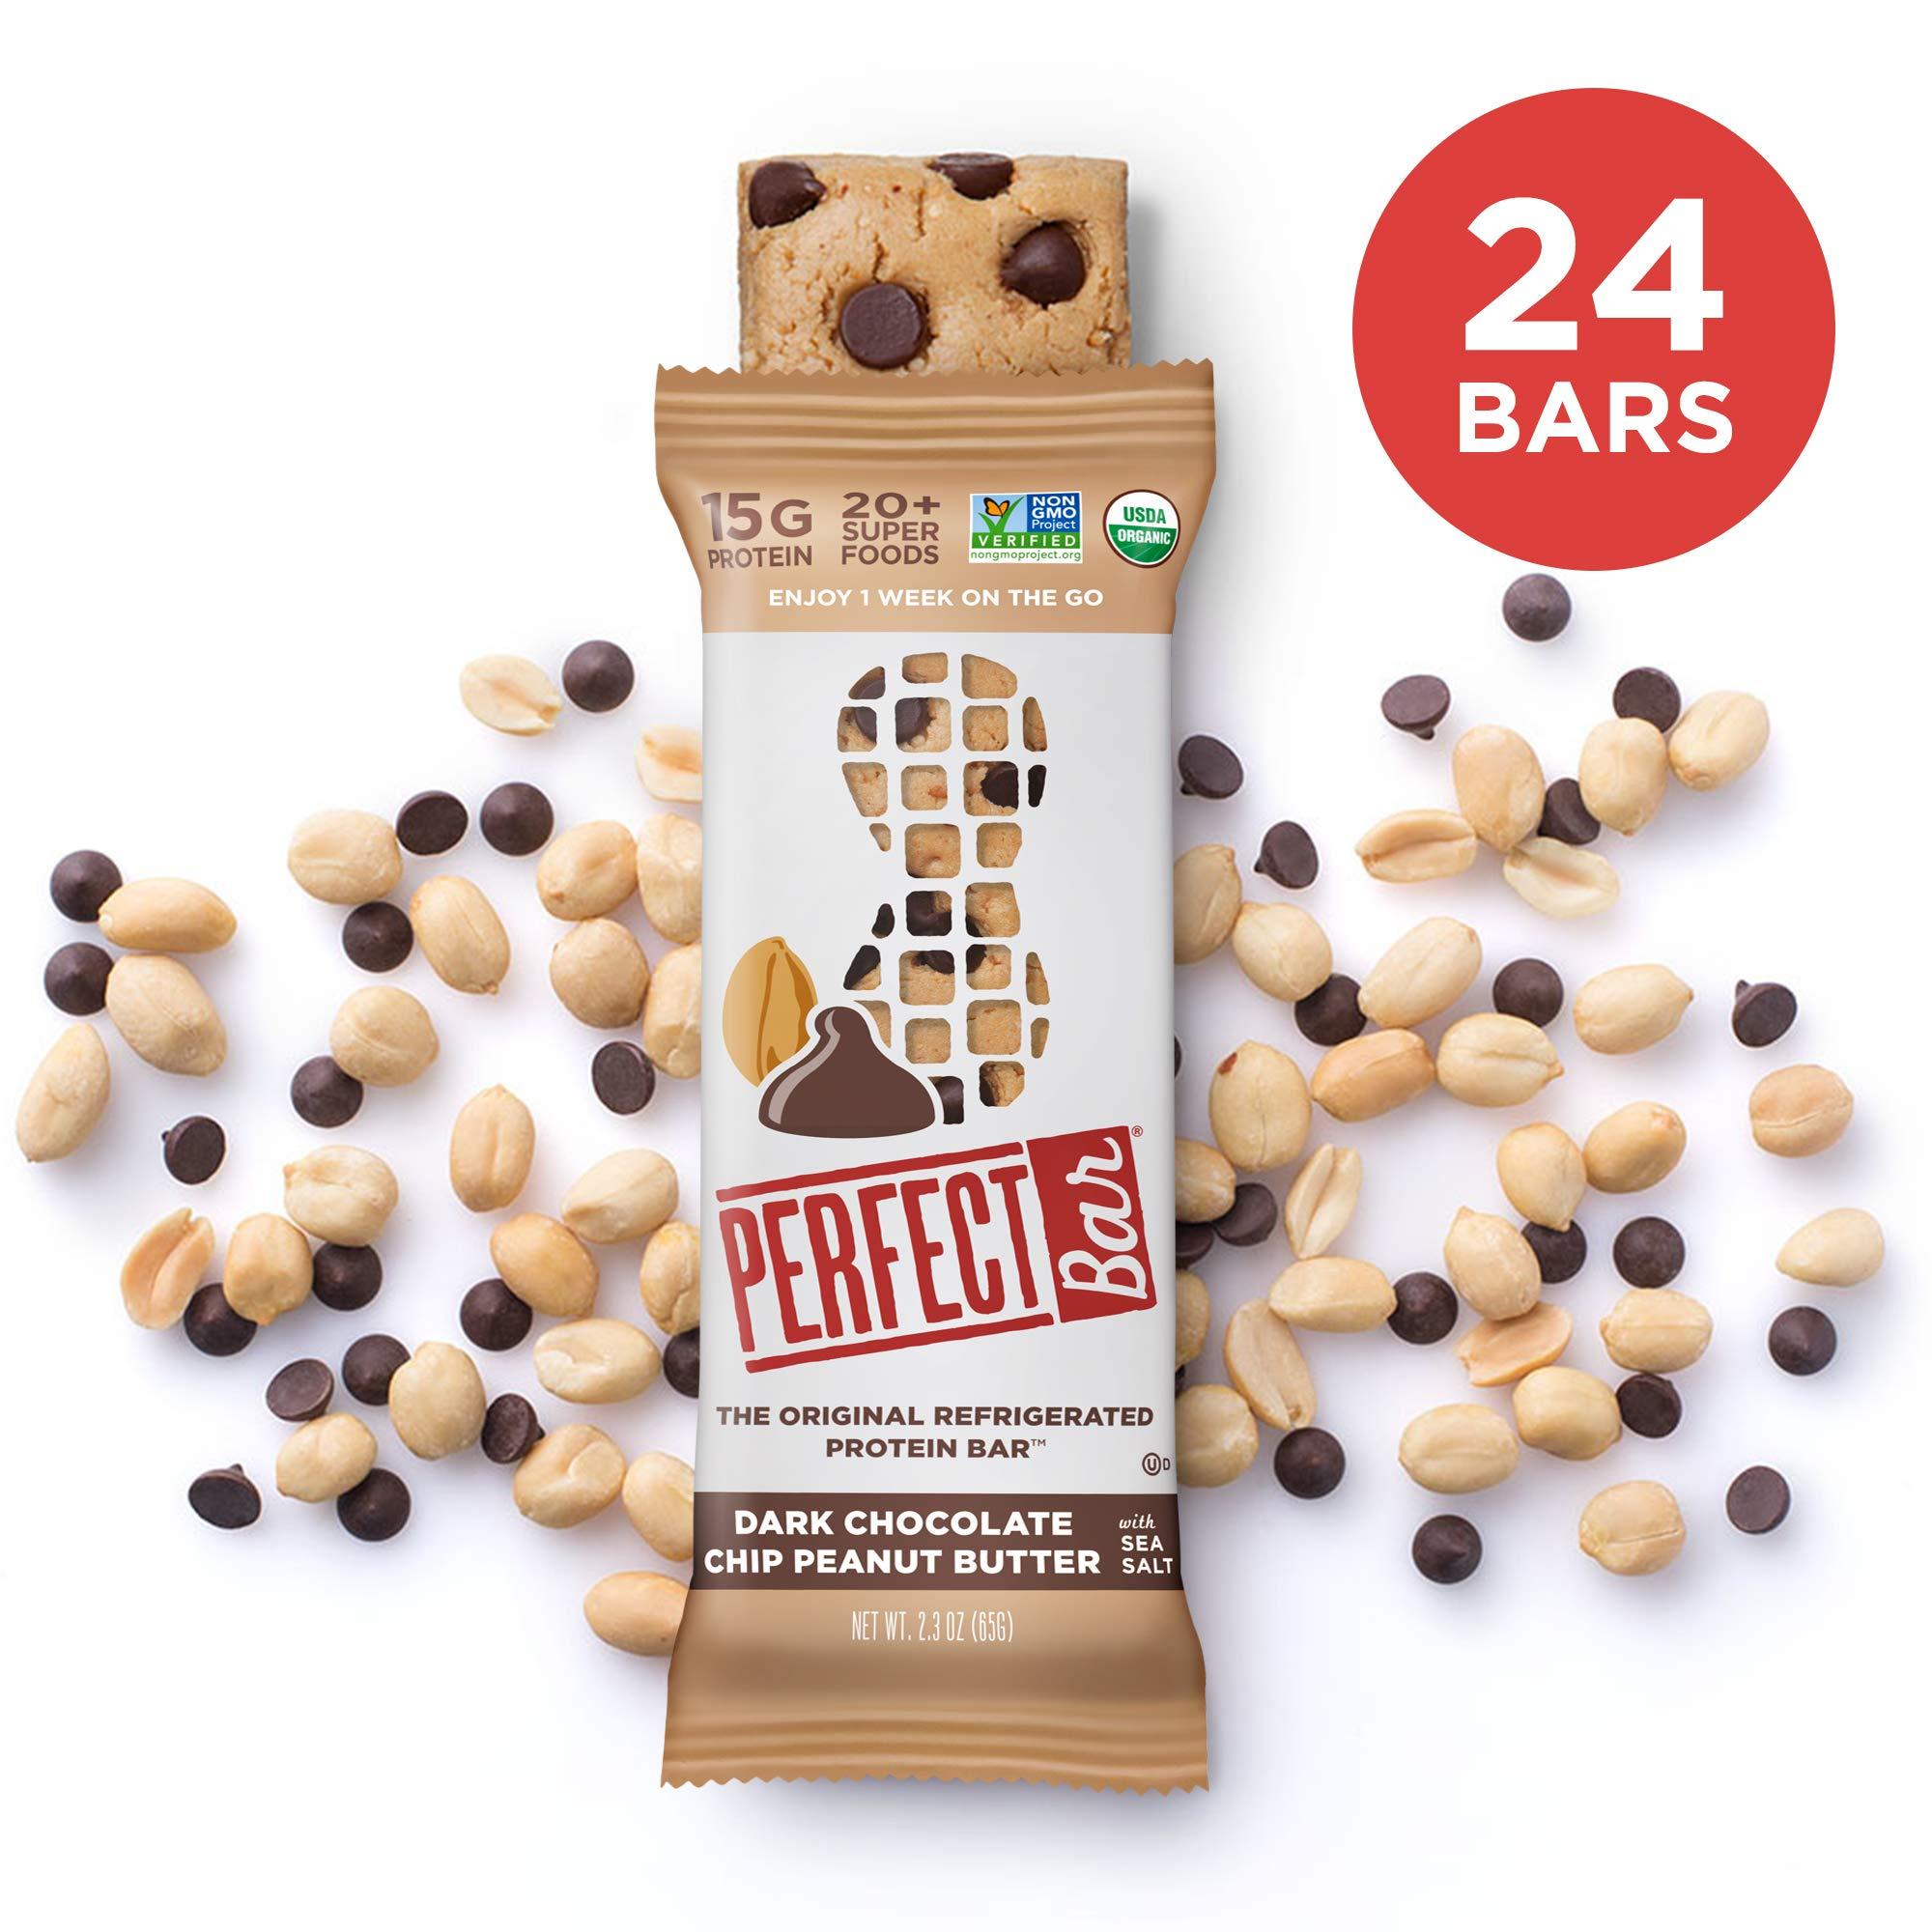 Perfect Bar Original Refrigerated Protein bar, Dark Chocolate Chip Peanut Butter, 15g Whole Food Protein, Gluten Free, Organic & Non-Gmo, 2.3 Oz. bar, 8 Count (Pack of 3) by Perfect Bar